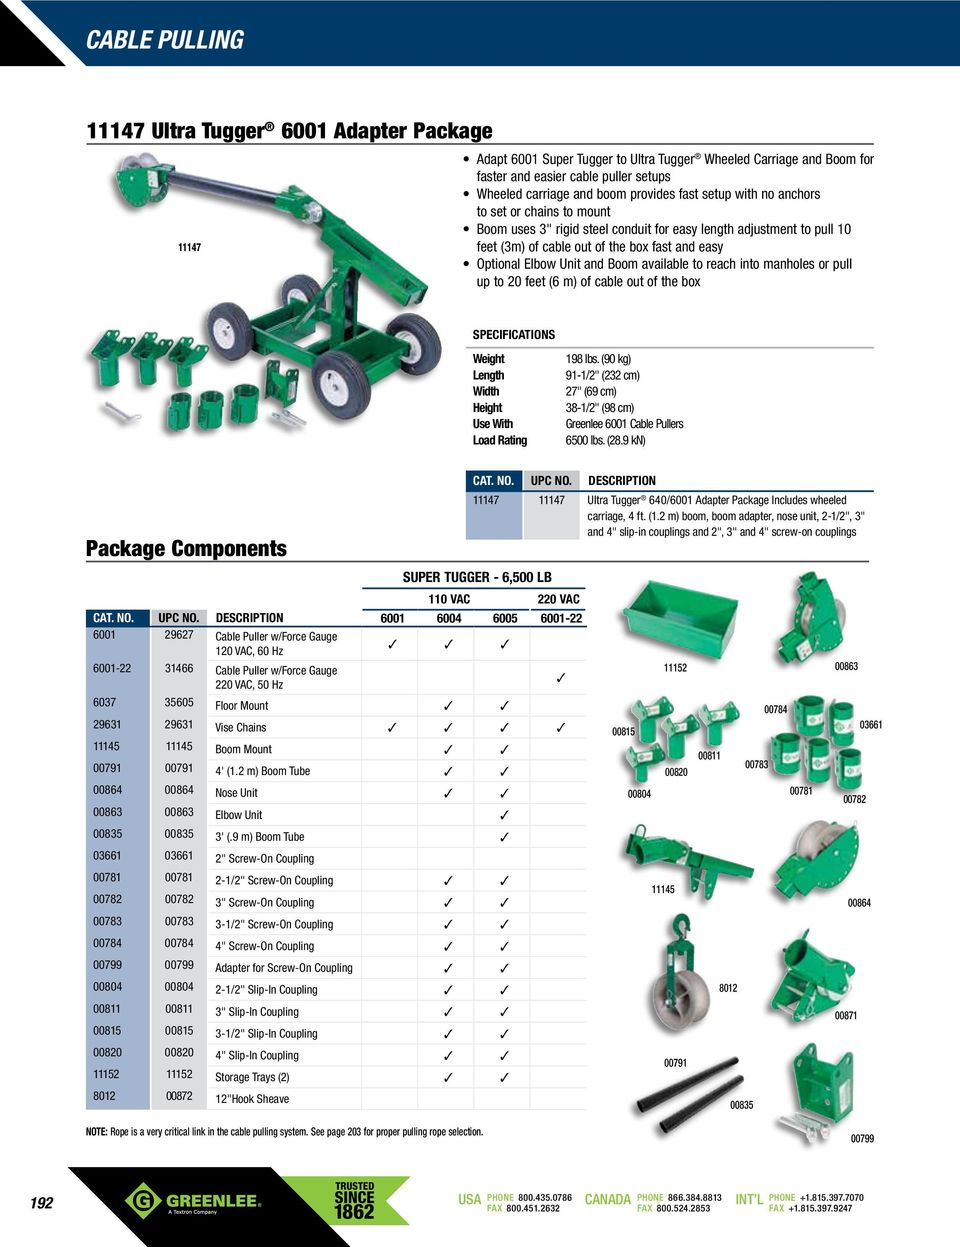 CABLE PULLING. Contents. - PDF